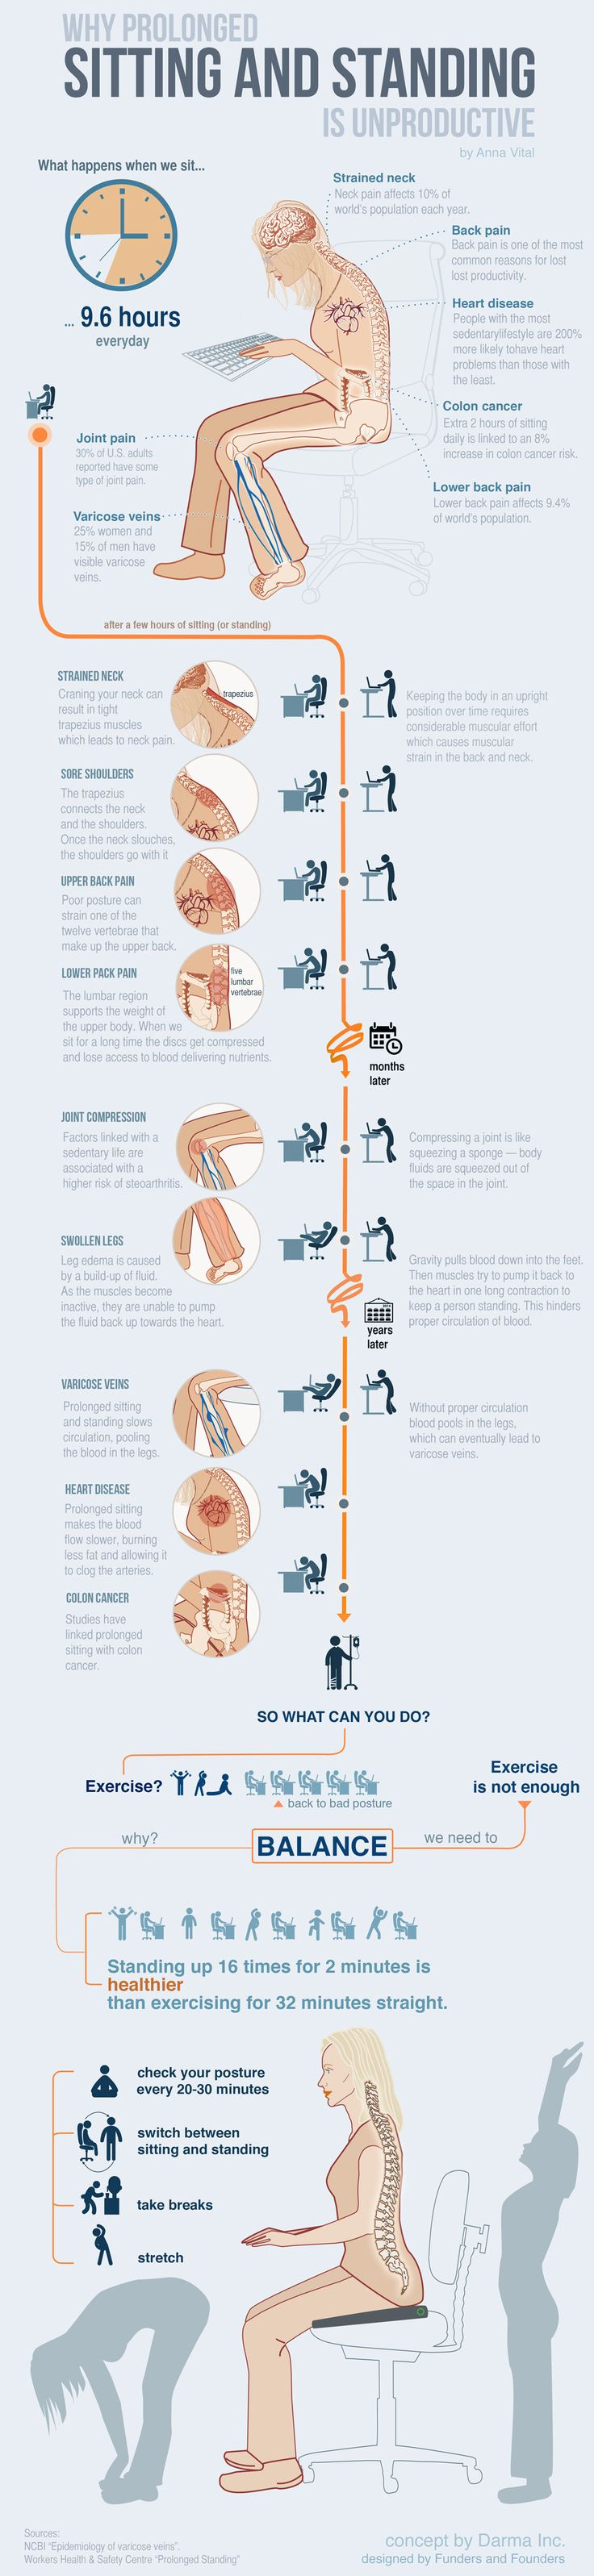 Why Prolonged Sitting And Standing Is Unproductive #infographic ~ Visualistan